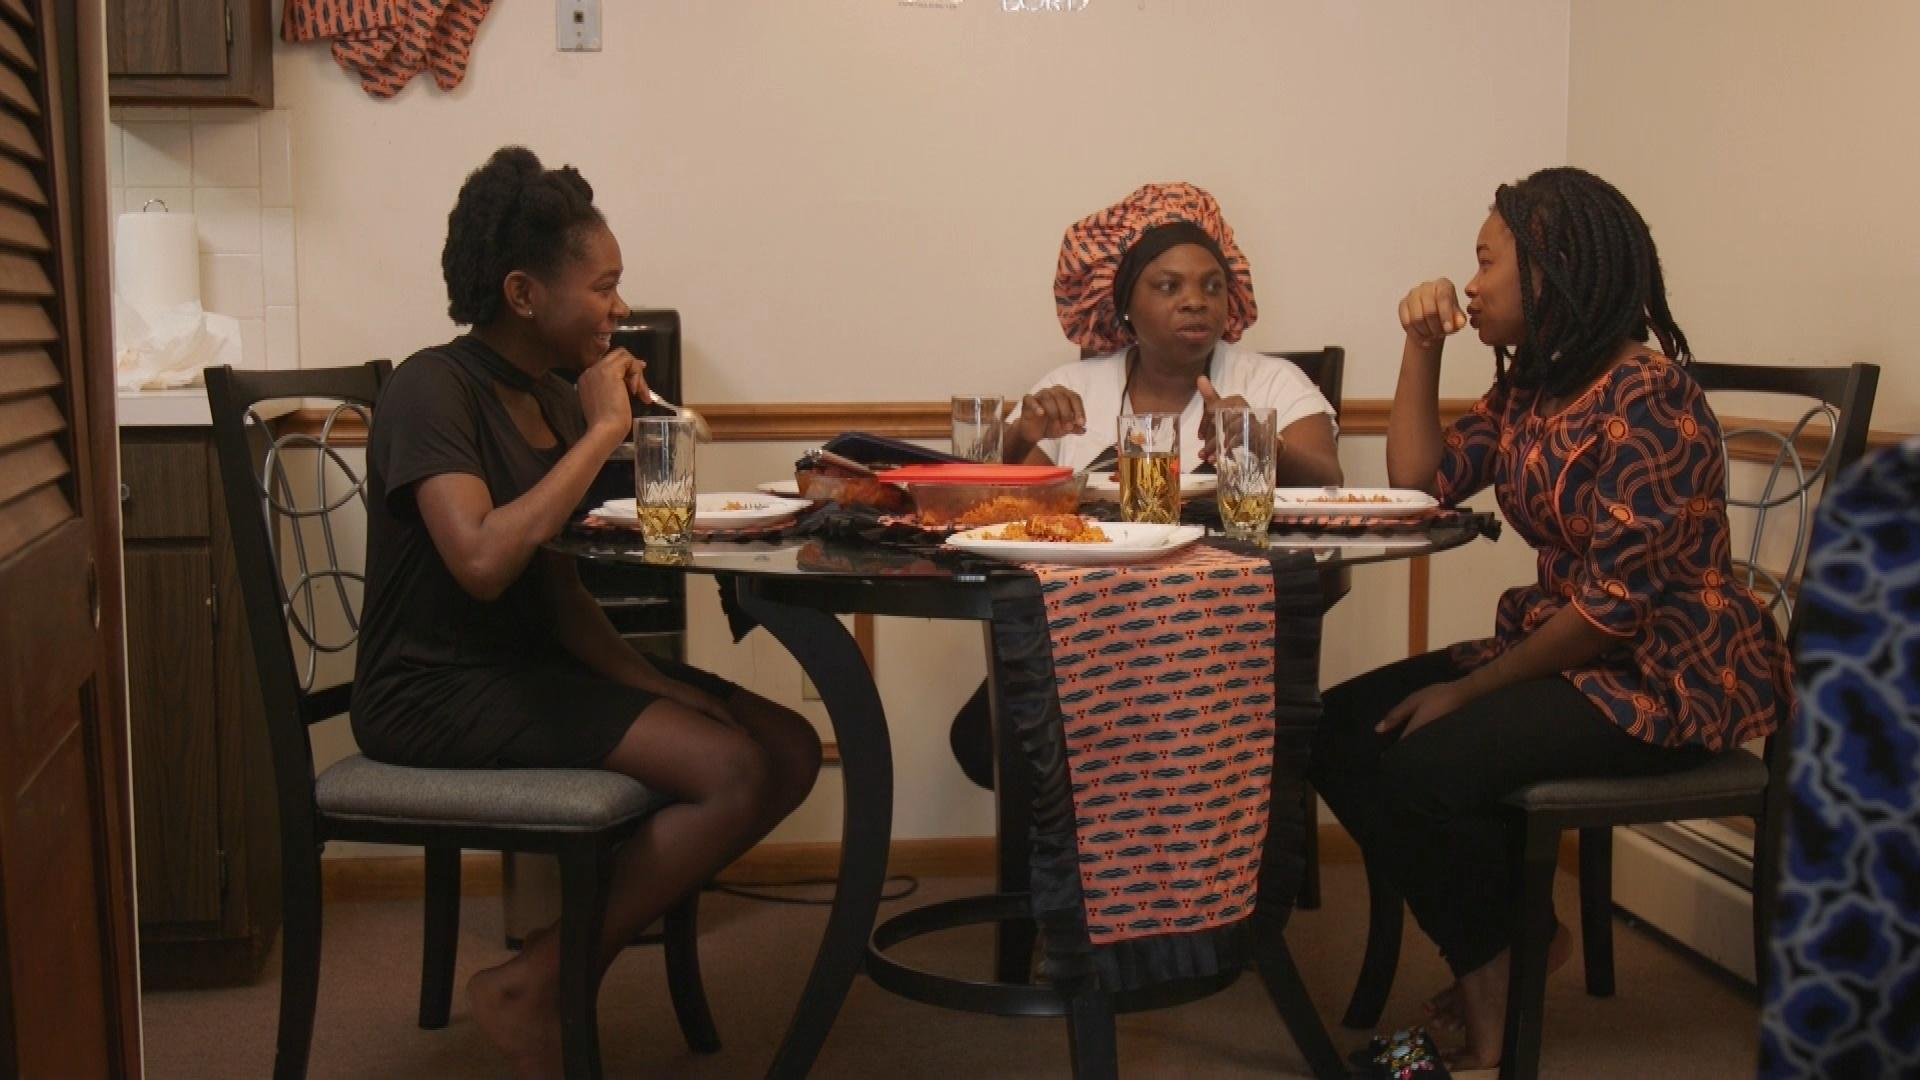 Family at diner table eating Nigerian Jollof RIce